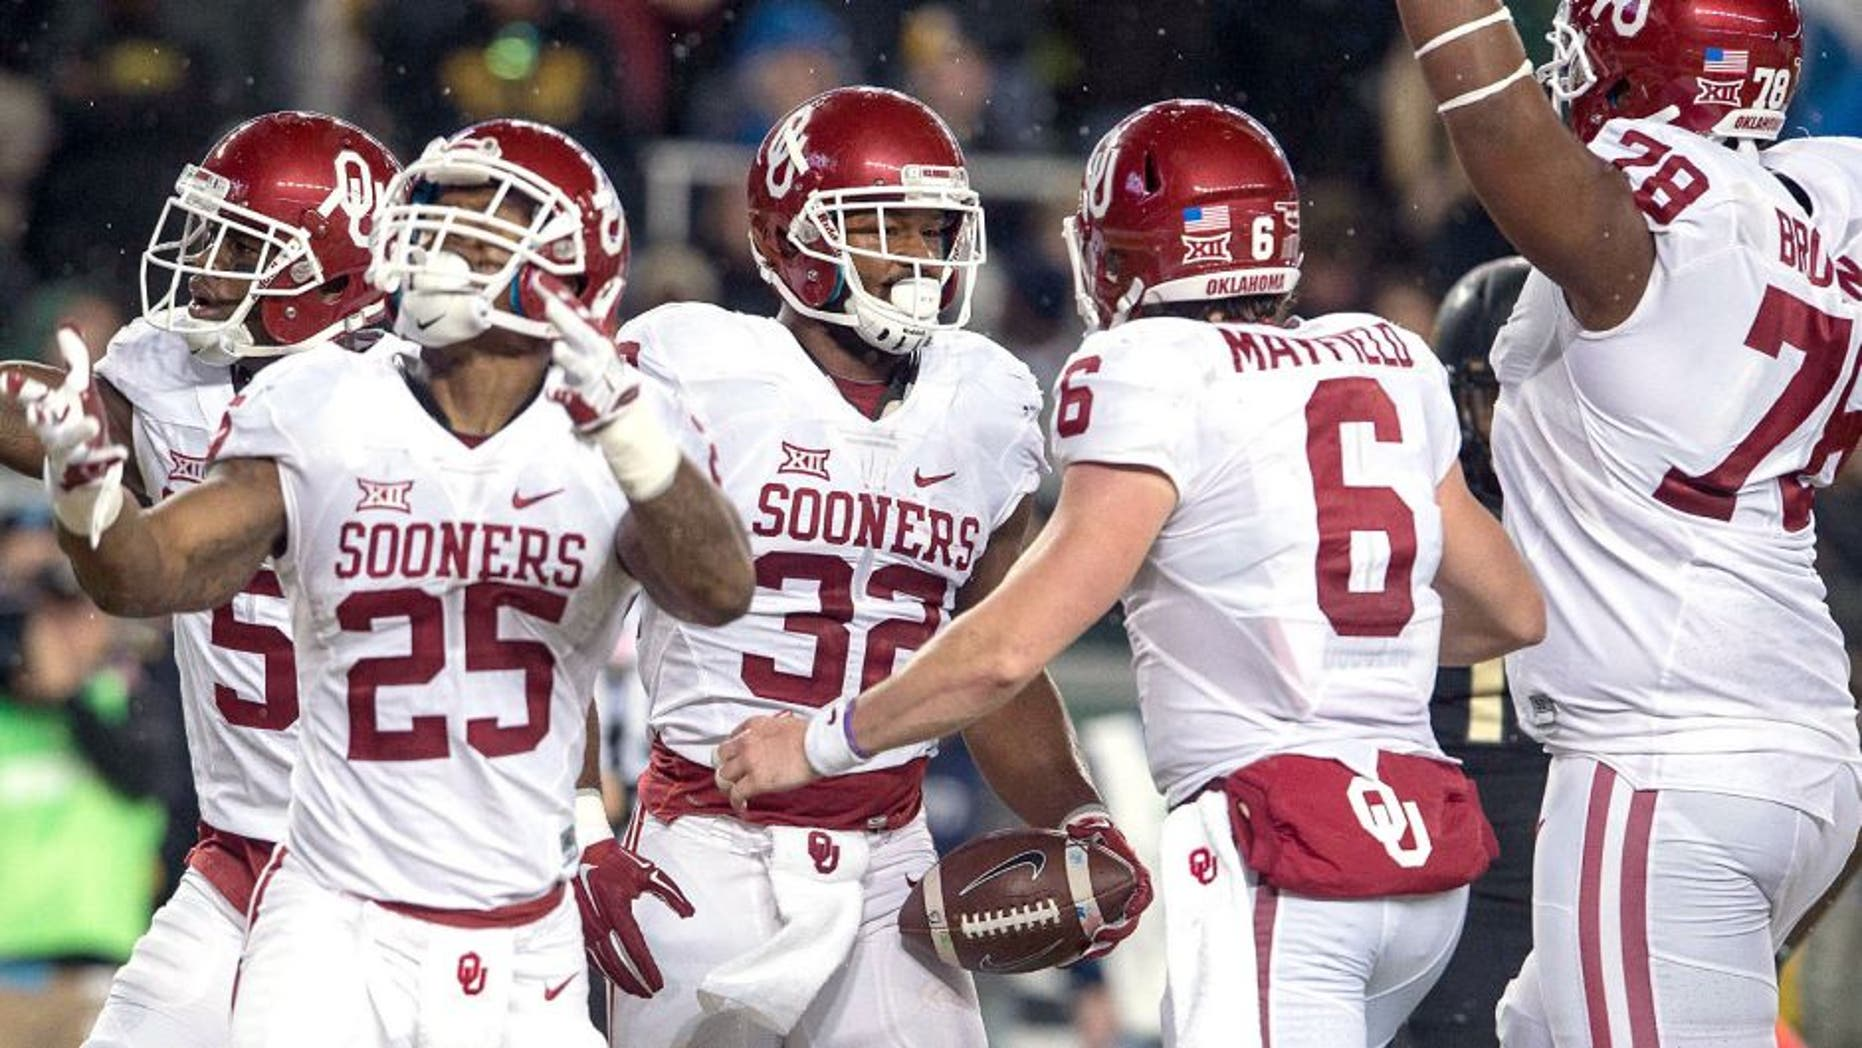 Nov 14, 2015; Waco, TX, USA; Oklahoma Sooners wide receiver Sterling Shepard (3) and running back Joe Mixon (25) and running back Samaje Perine (32) and quarterback Baker Mayfield (6) celebrate Perine's touchdown against the Baylor Bears during the first quarter at McLane Stadium. Mandatory Credit: Jerome Miron-USA TODAY Sports